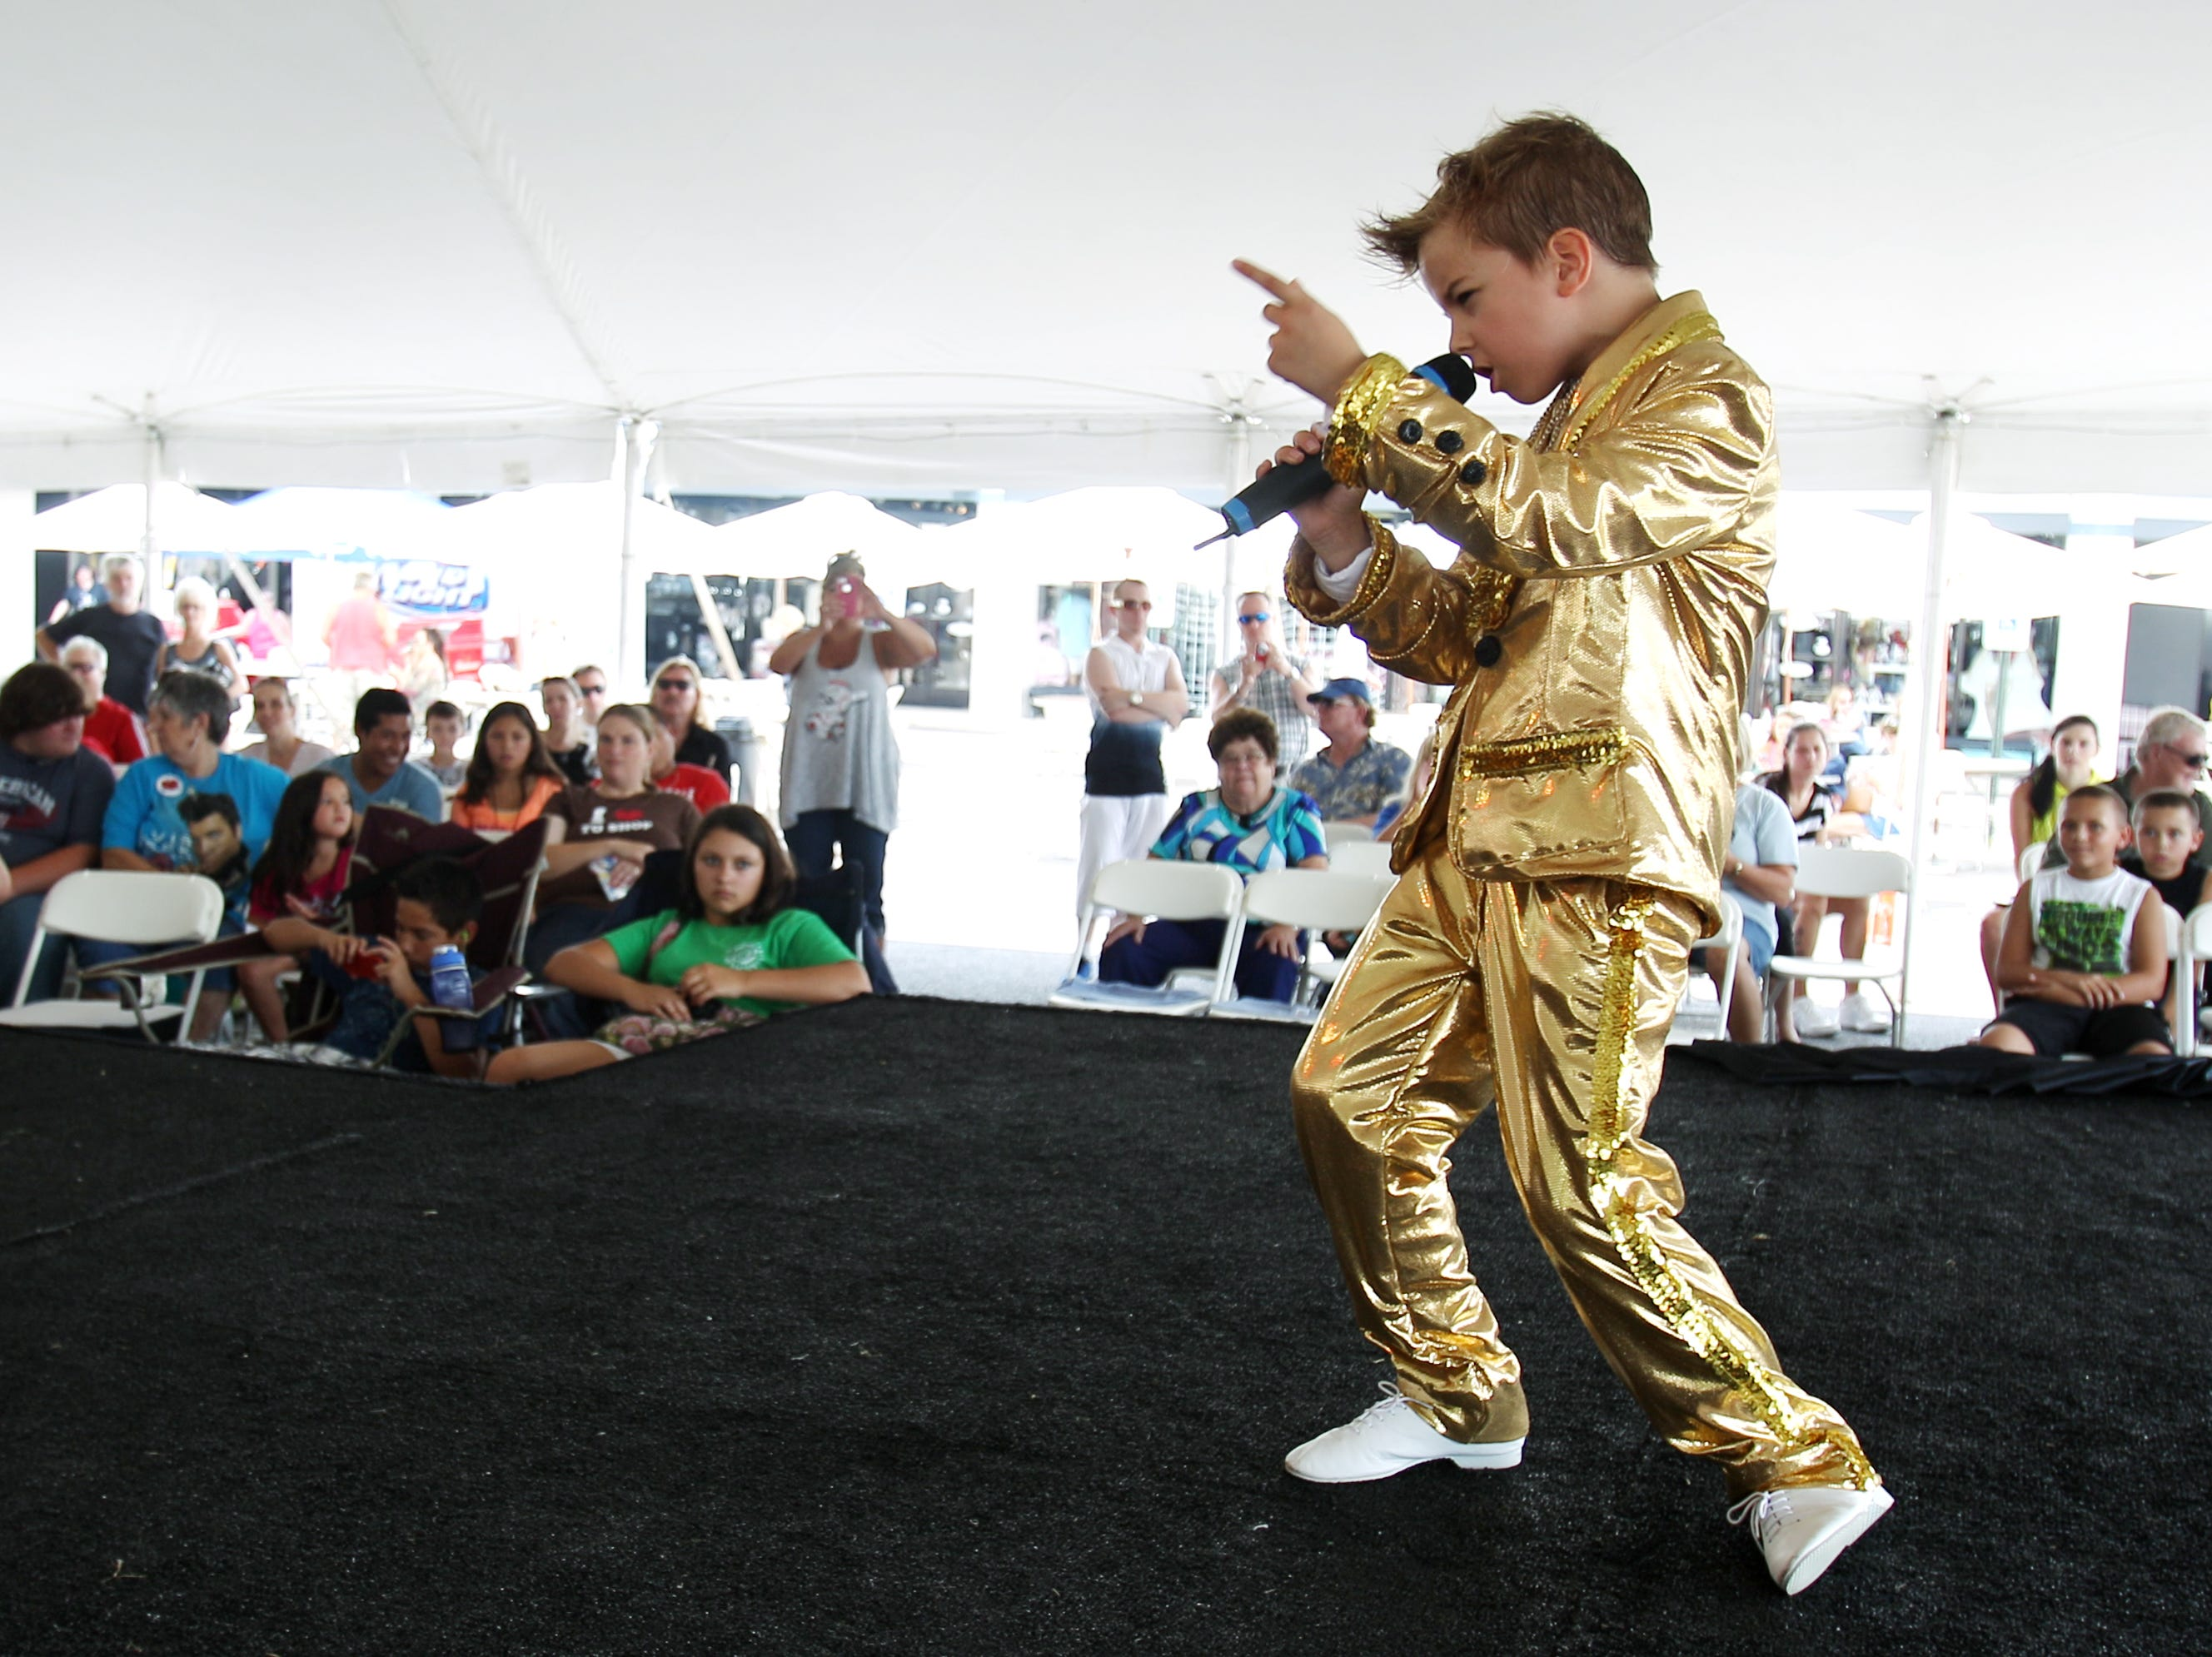 August 11, 2014 - John Paul Melling, 8, of Manchester, England, sings karaoke at Graceland Crossing as part of Elvis Week festivities on Monday. (Mike Brown/The Commercial Appeal)